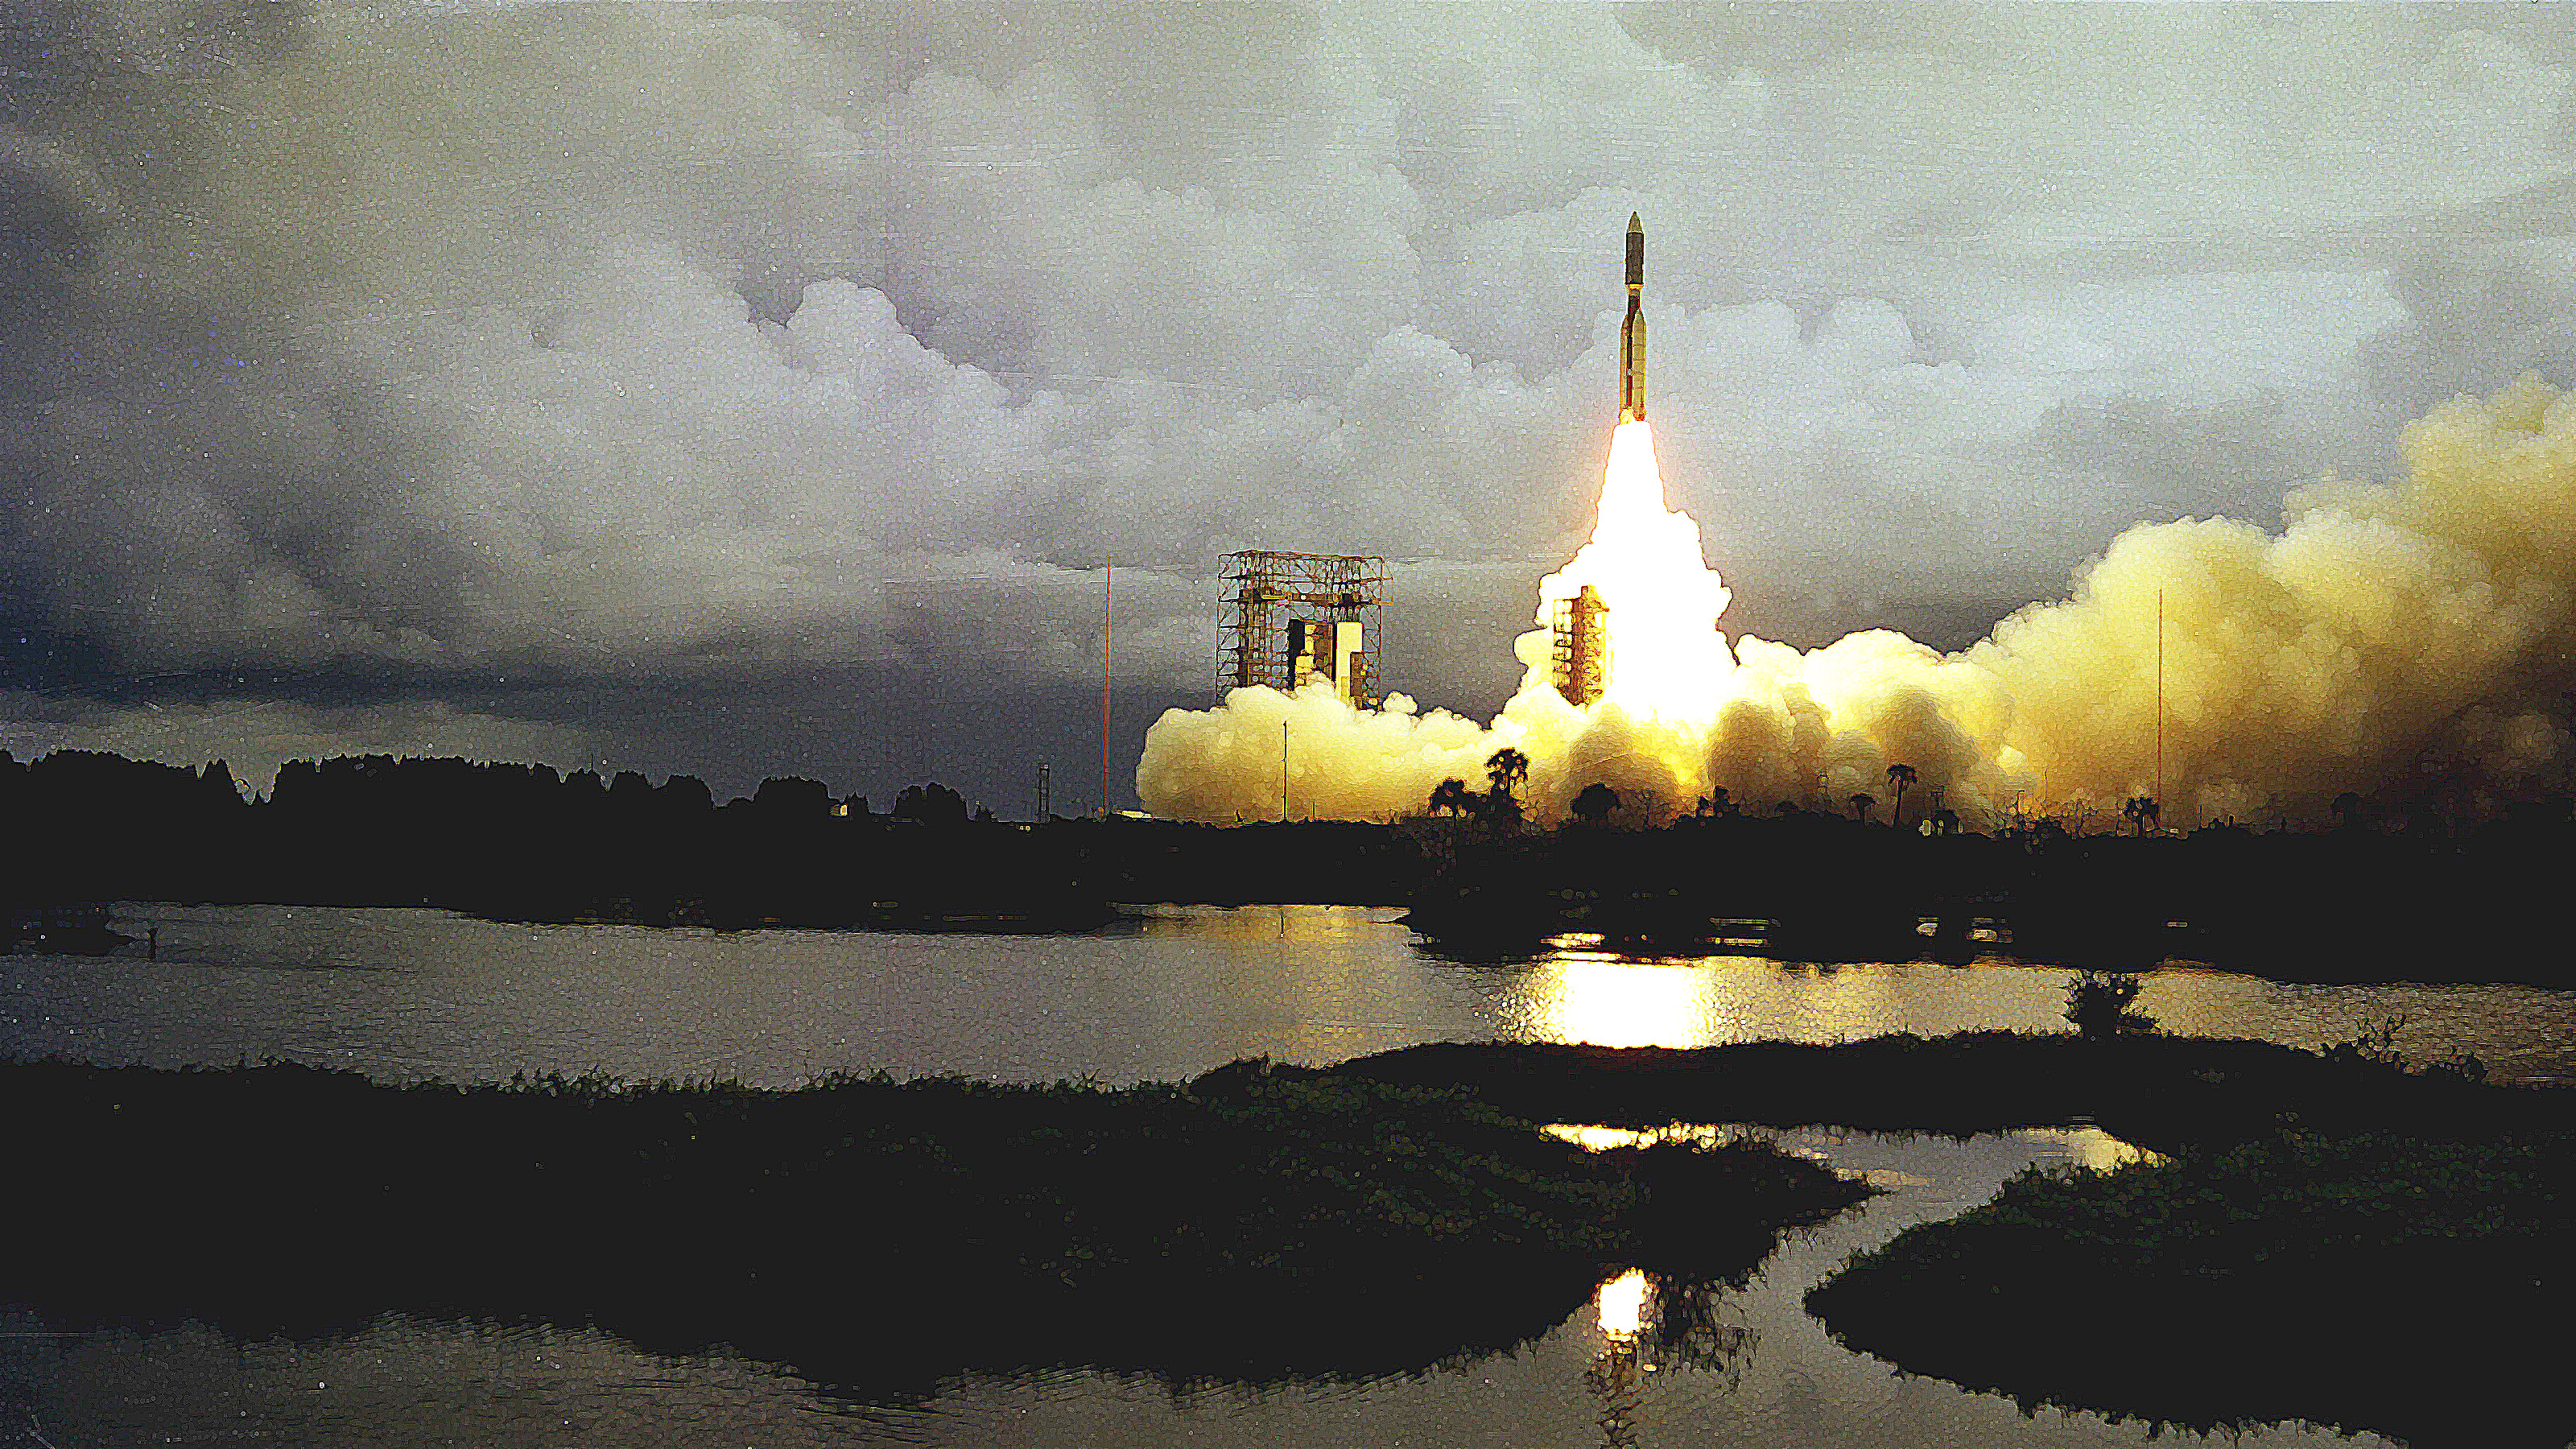 viking 2 launch